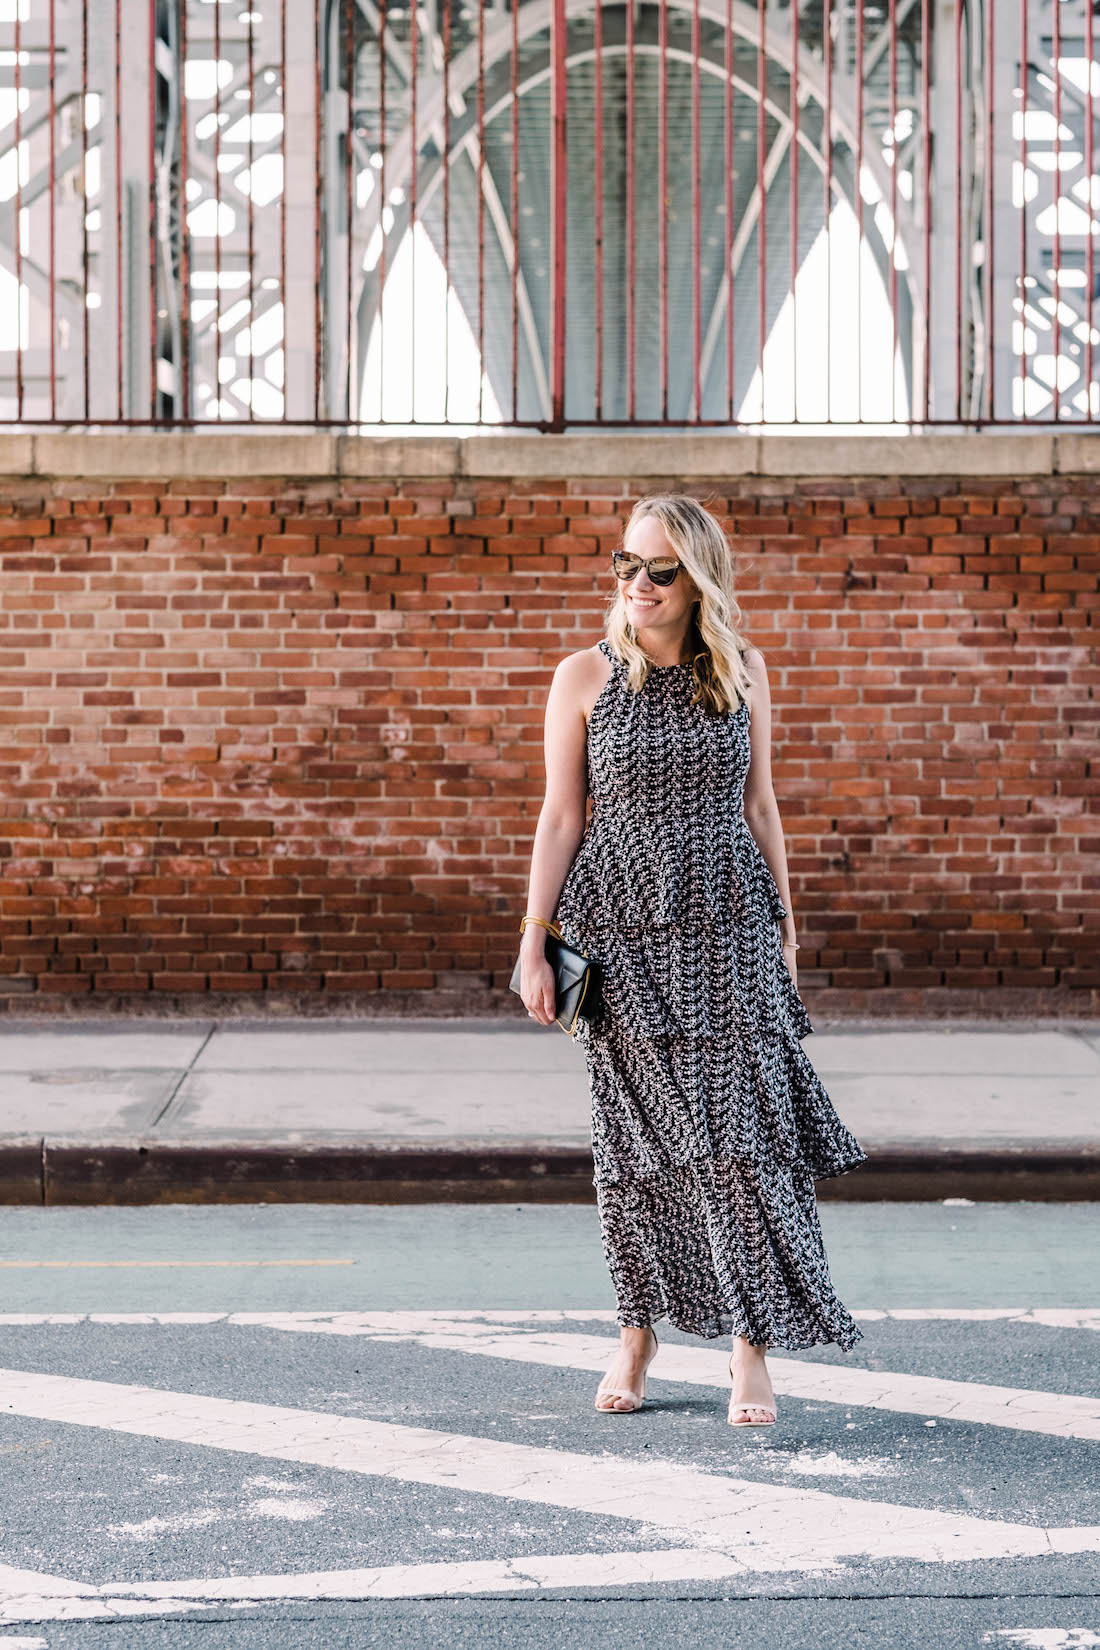 favorite new maxi dress - the stripe